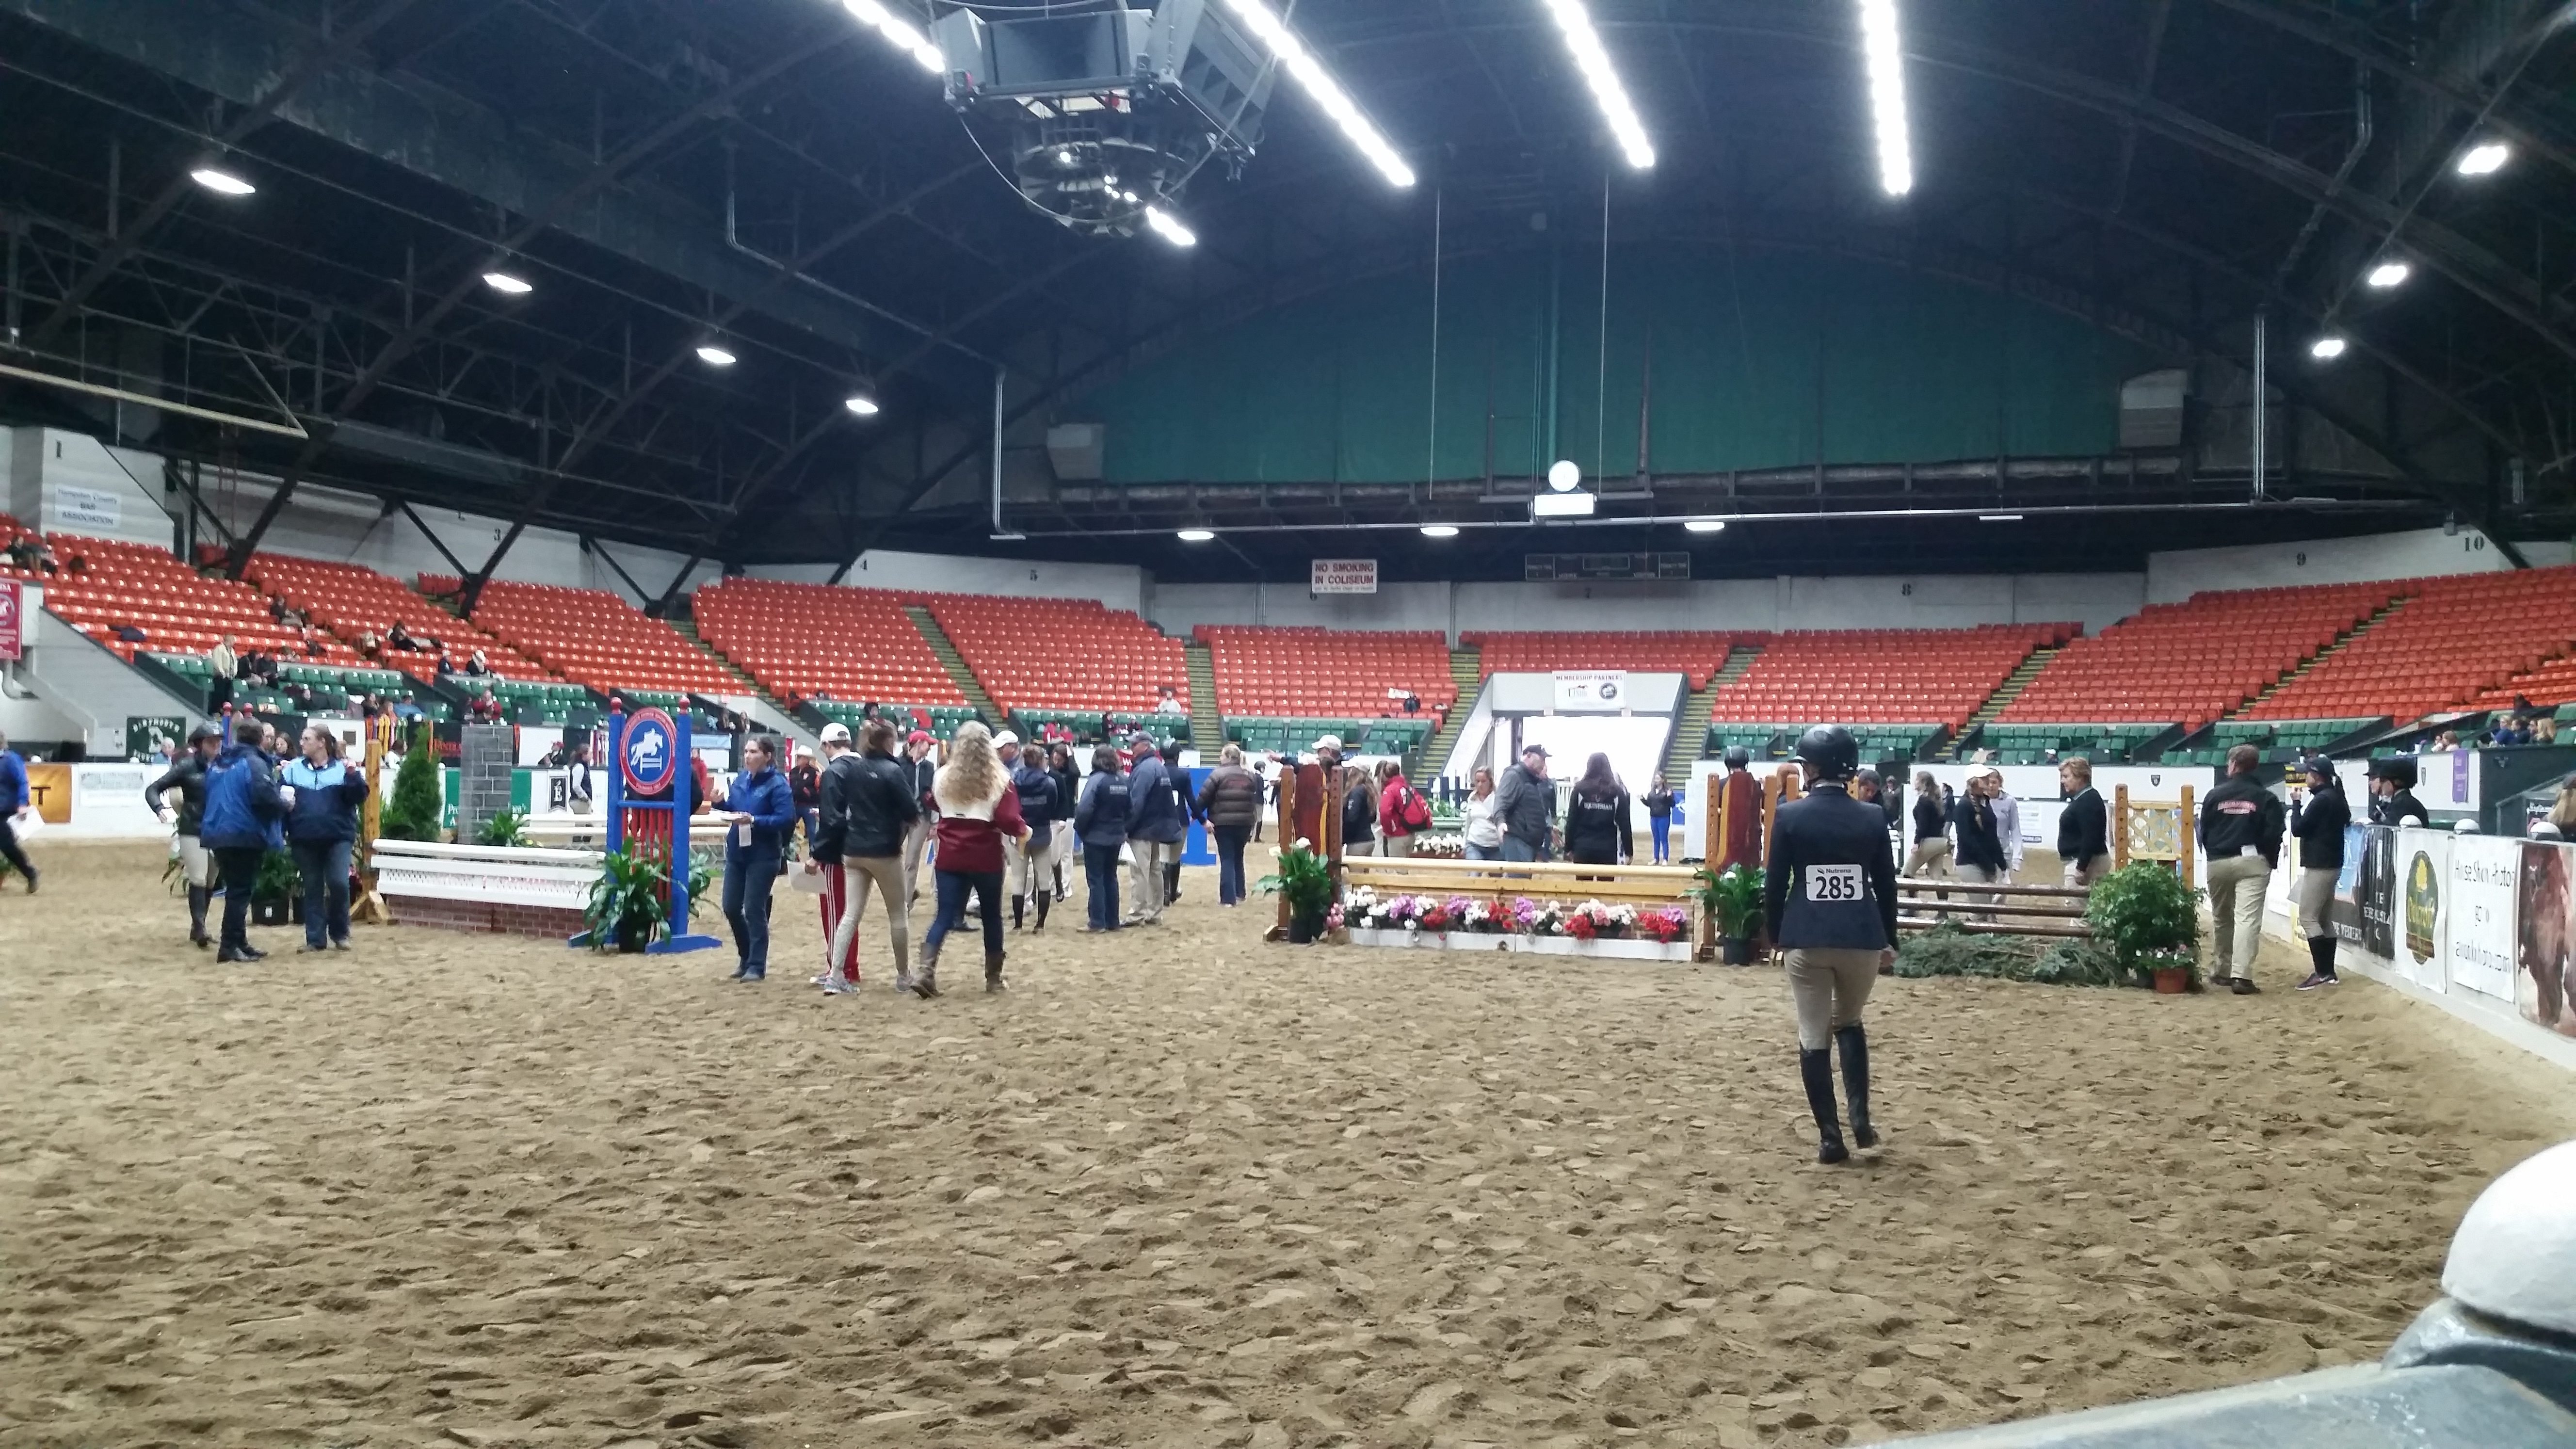 IHSA National Championships course walk. (Photo credit: Alistaire Ruggiero)